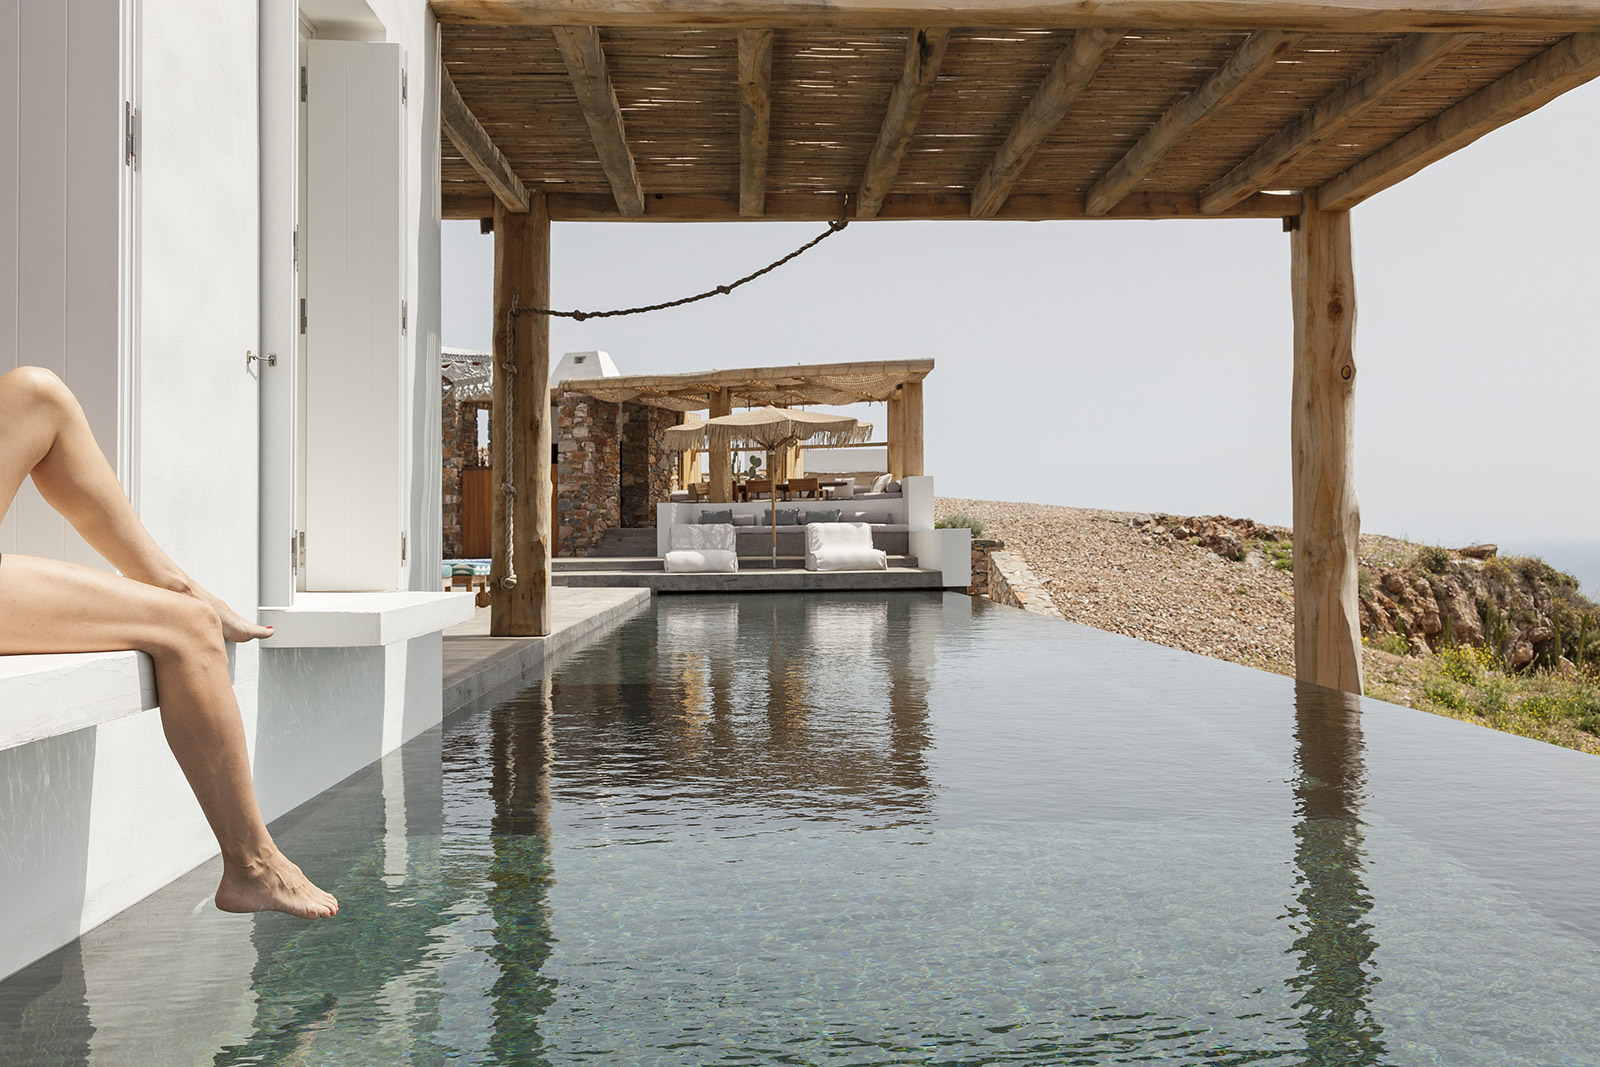 residence-in-syros-2-ph-ioanna-roufopoulou